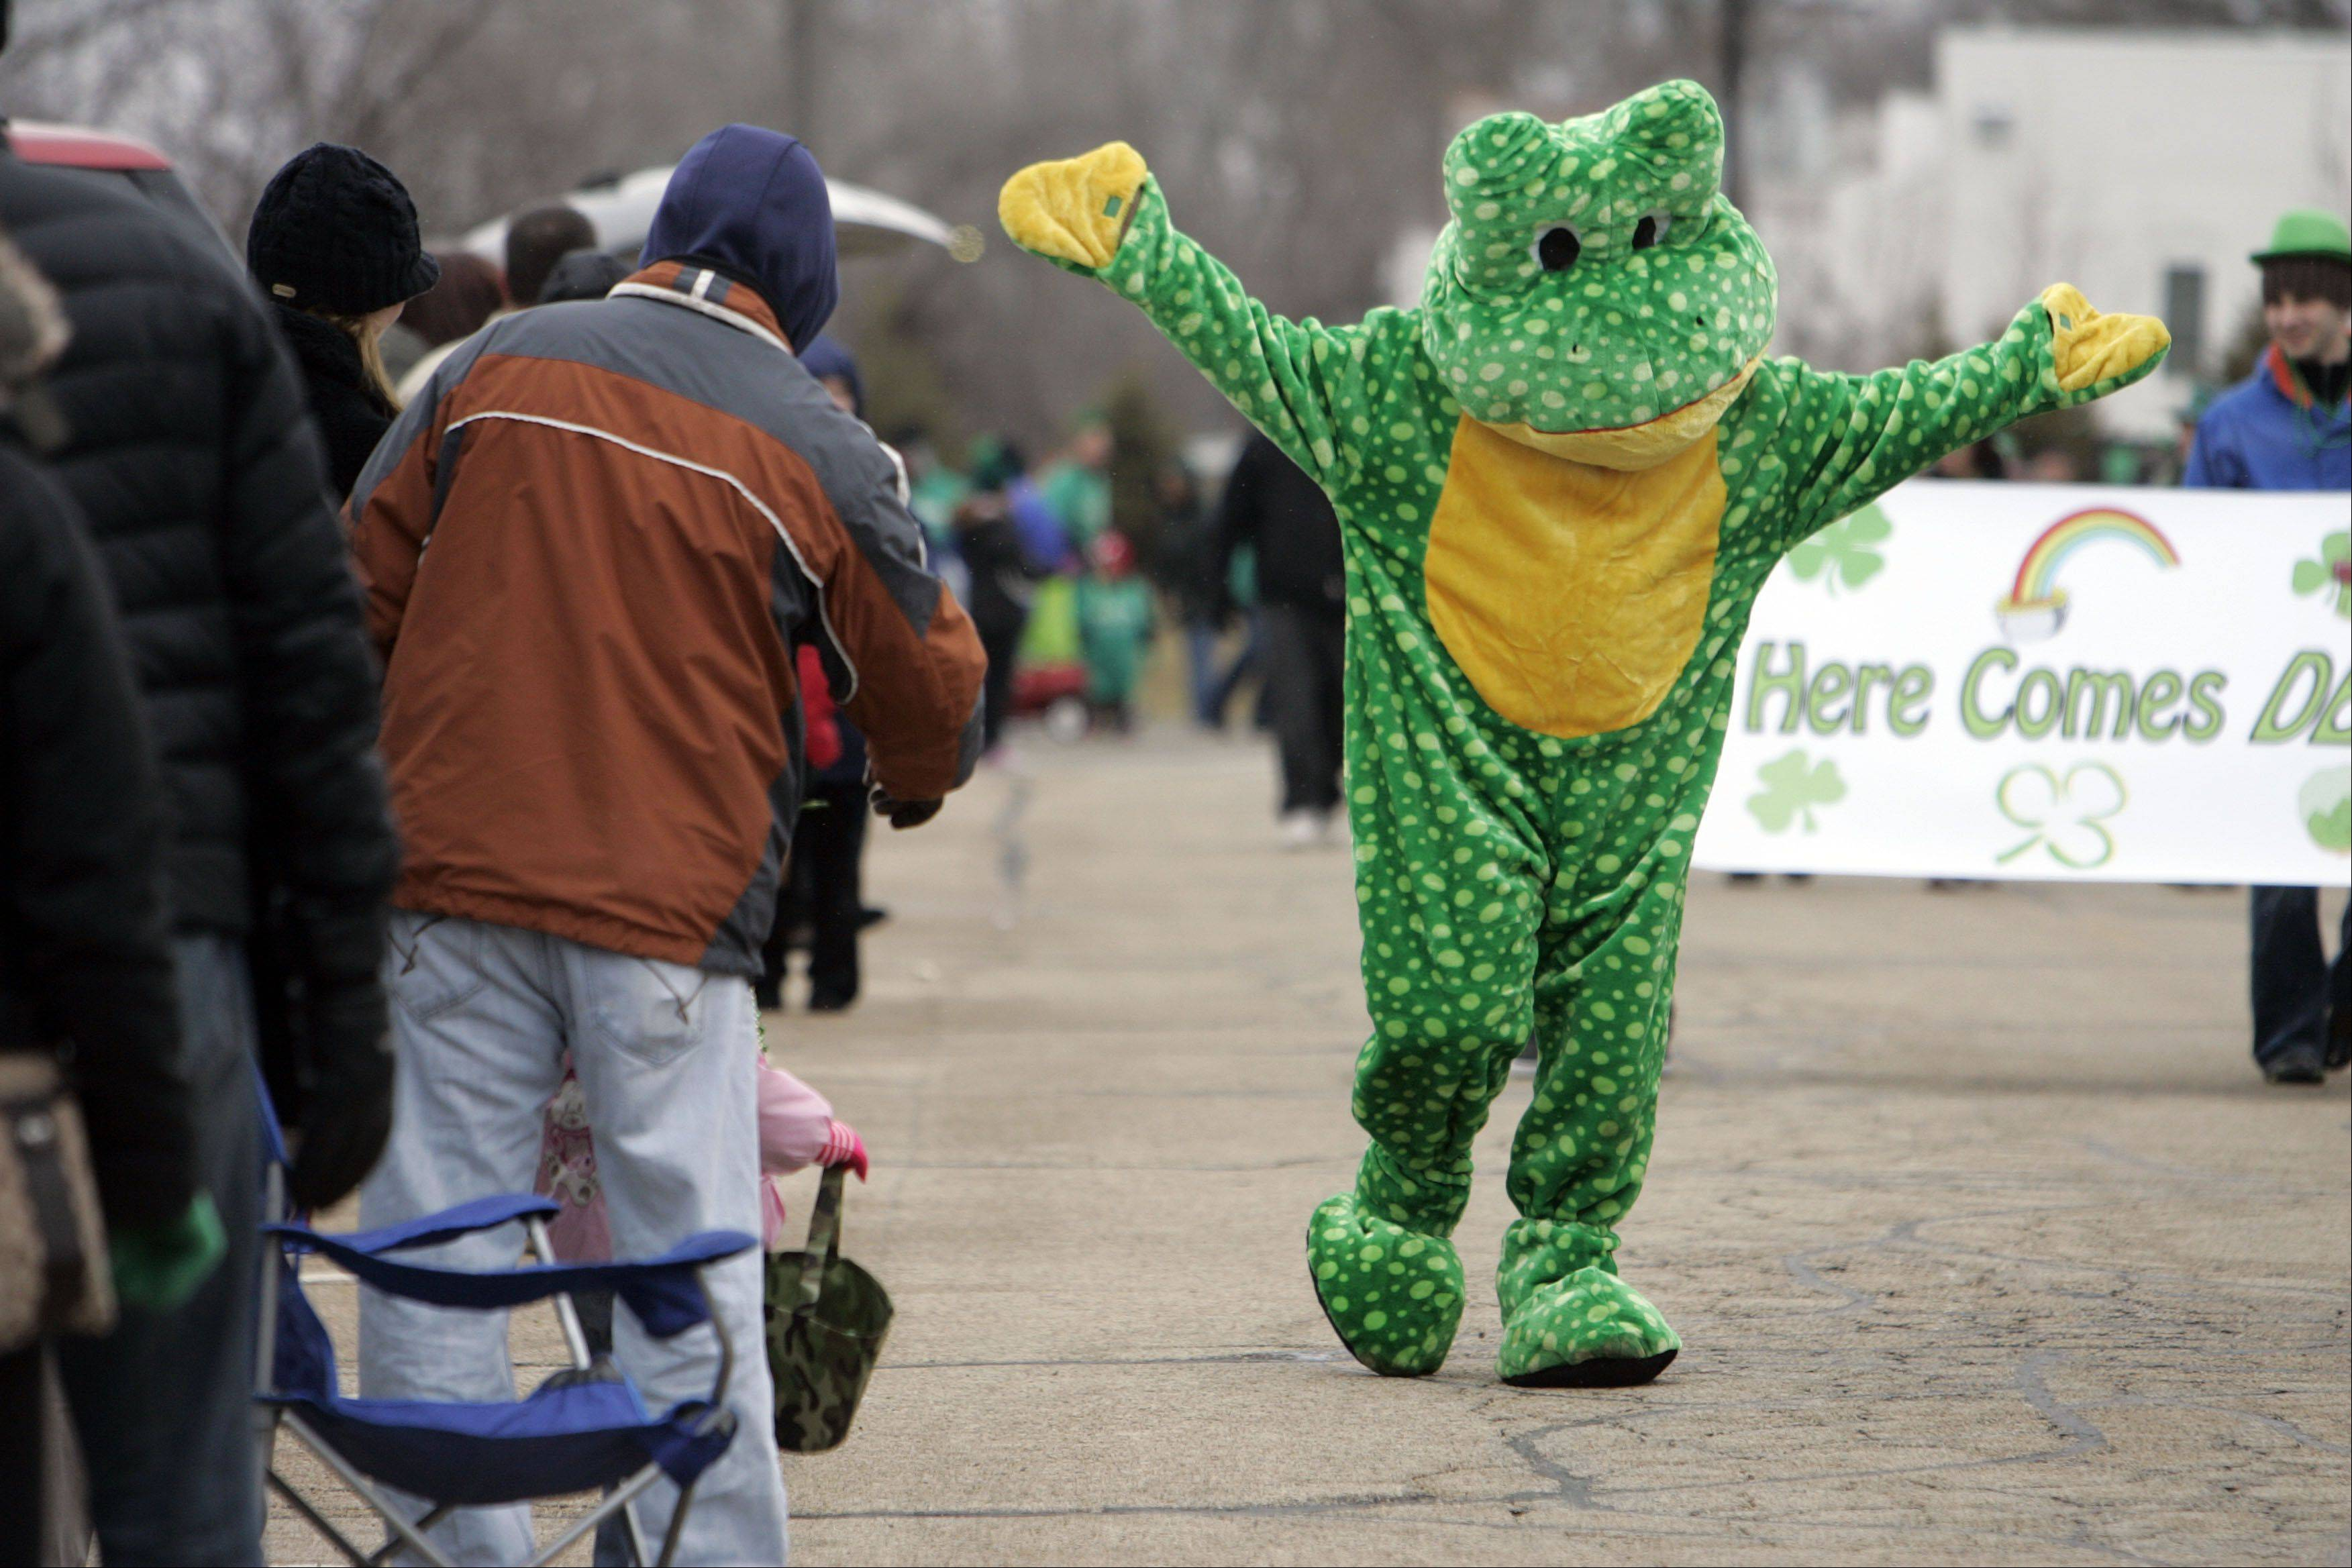 A green frog from the Chubby Bullfrog Bar & Grill in West Dundee makes his way down River Street during the Thom McNamee Memorial St. Patrick's Day Parade in East Dundee.